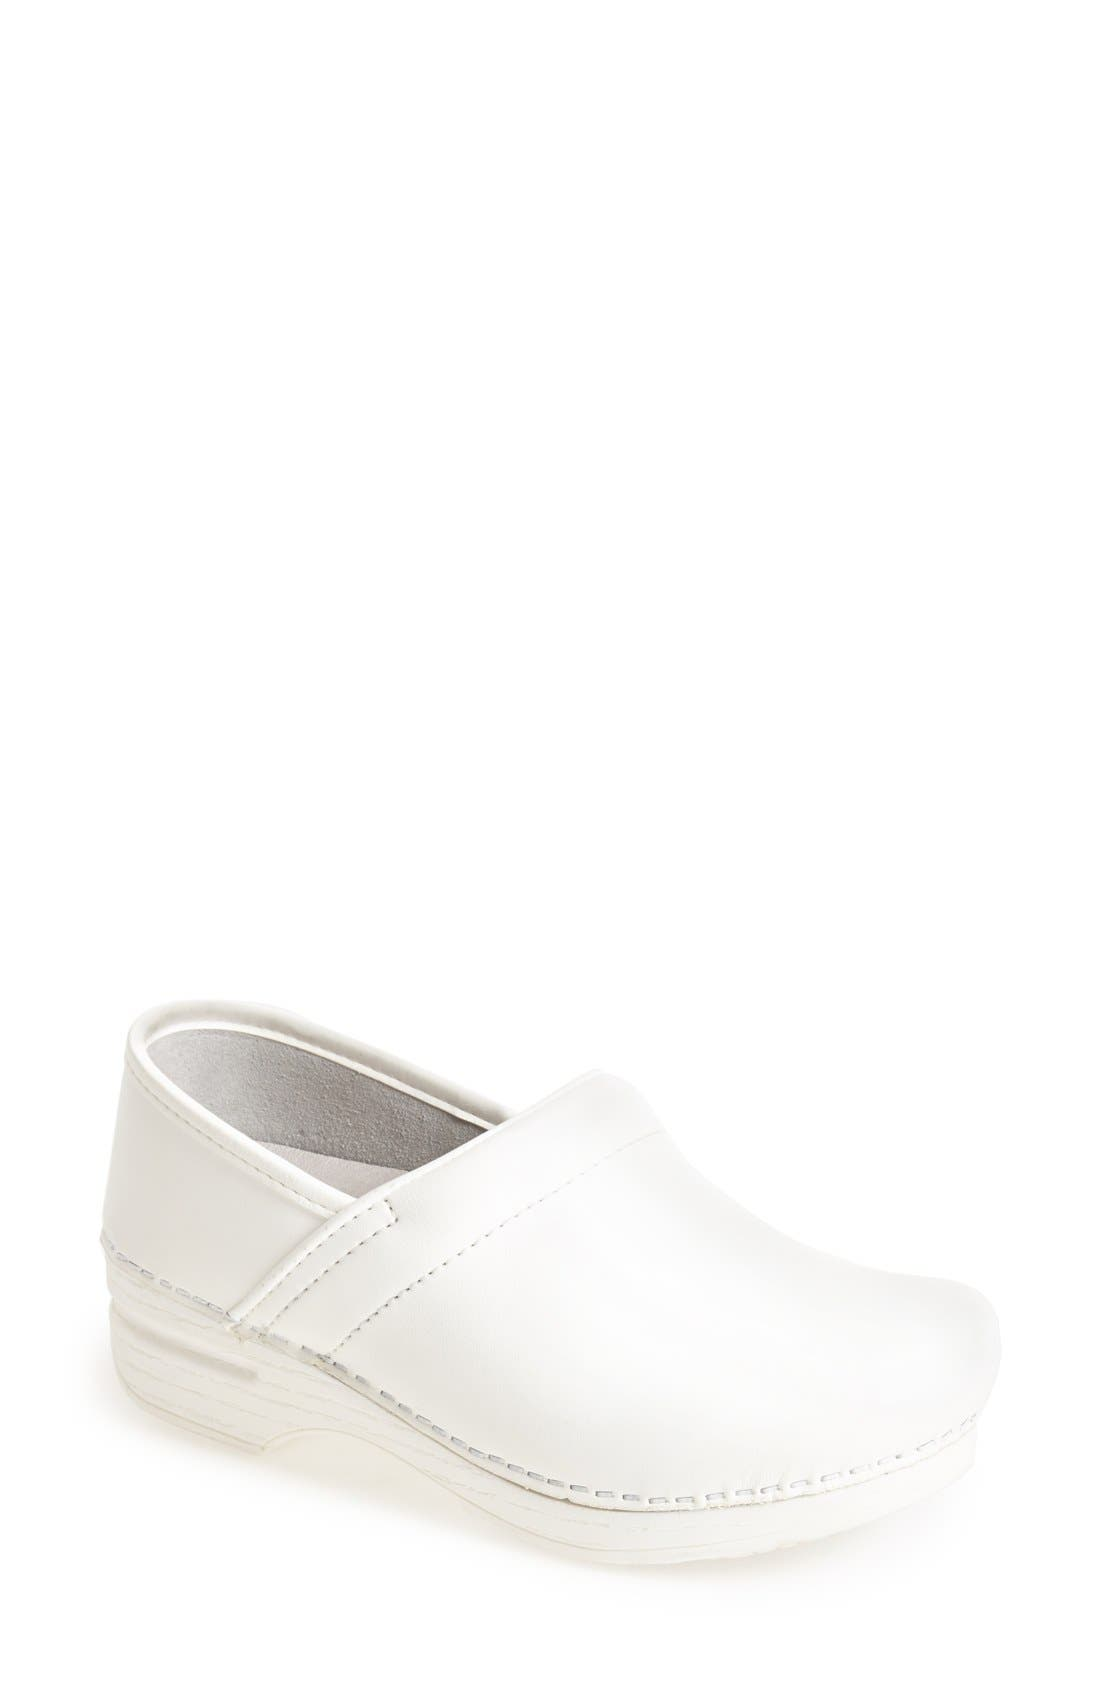 'Pro XP' Clog,                         Main,                         color, White